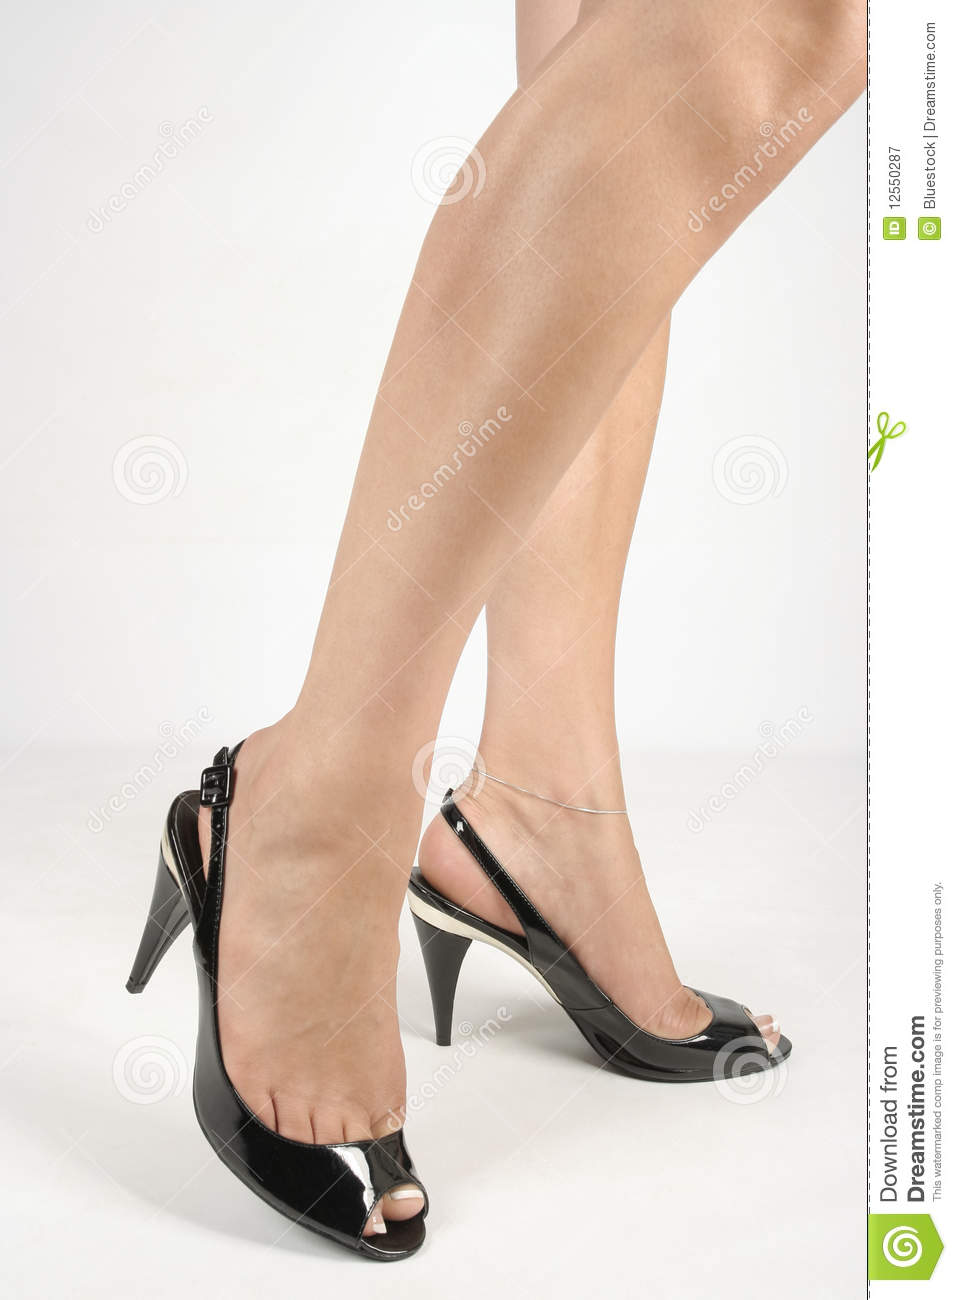 Female High Heel Shoes